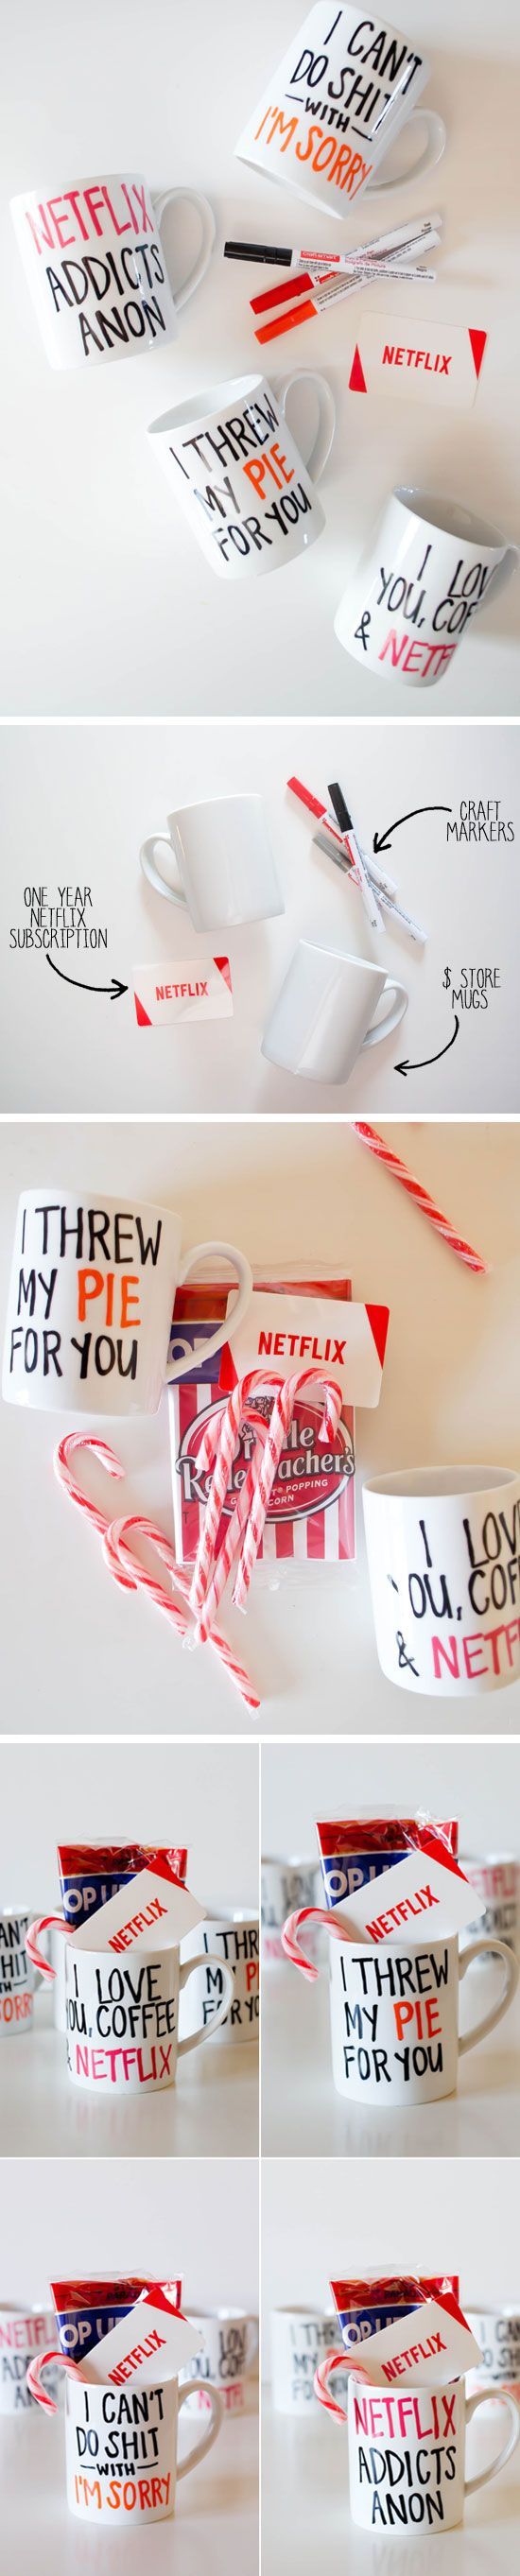 26 Creative Christmas Gifts for Family & Friends   DIY Christmas ...